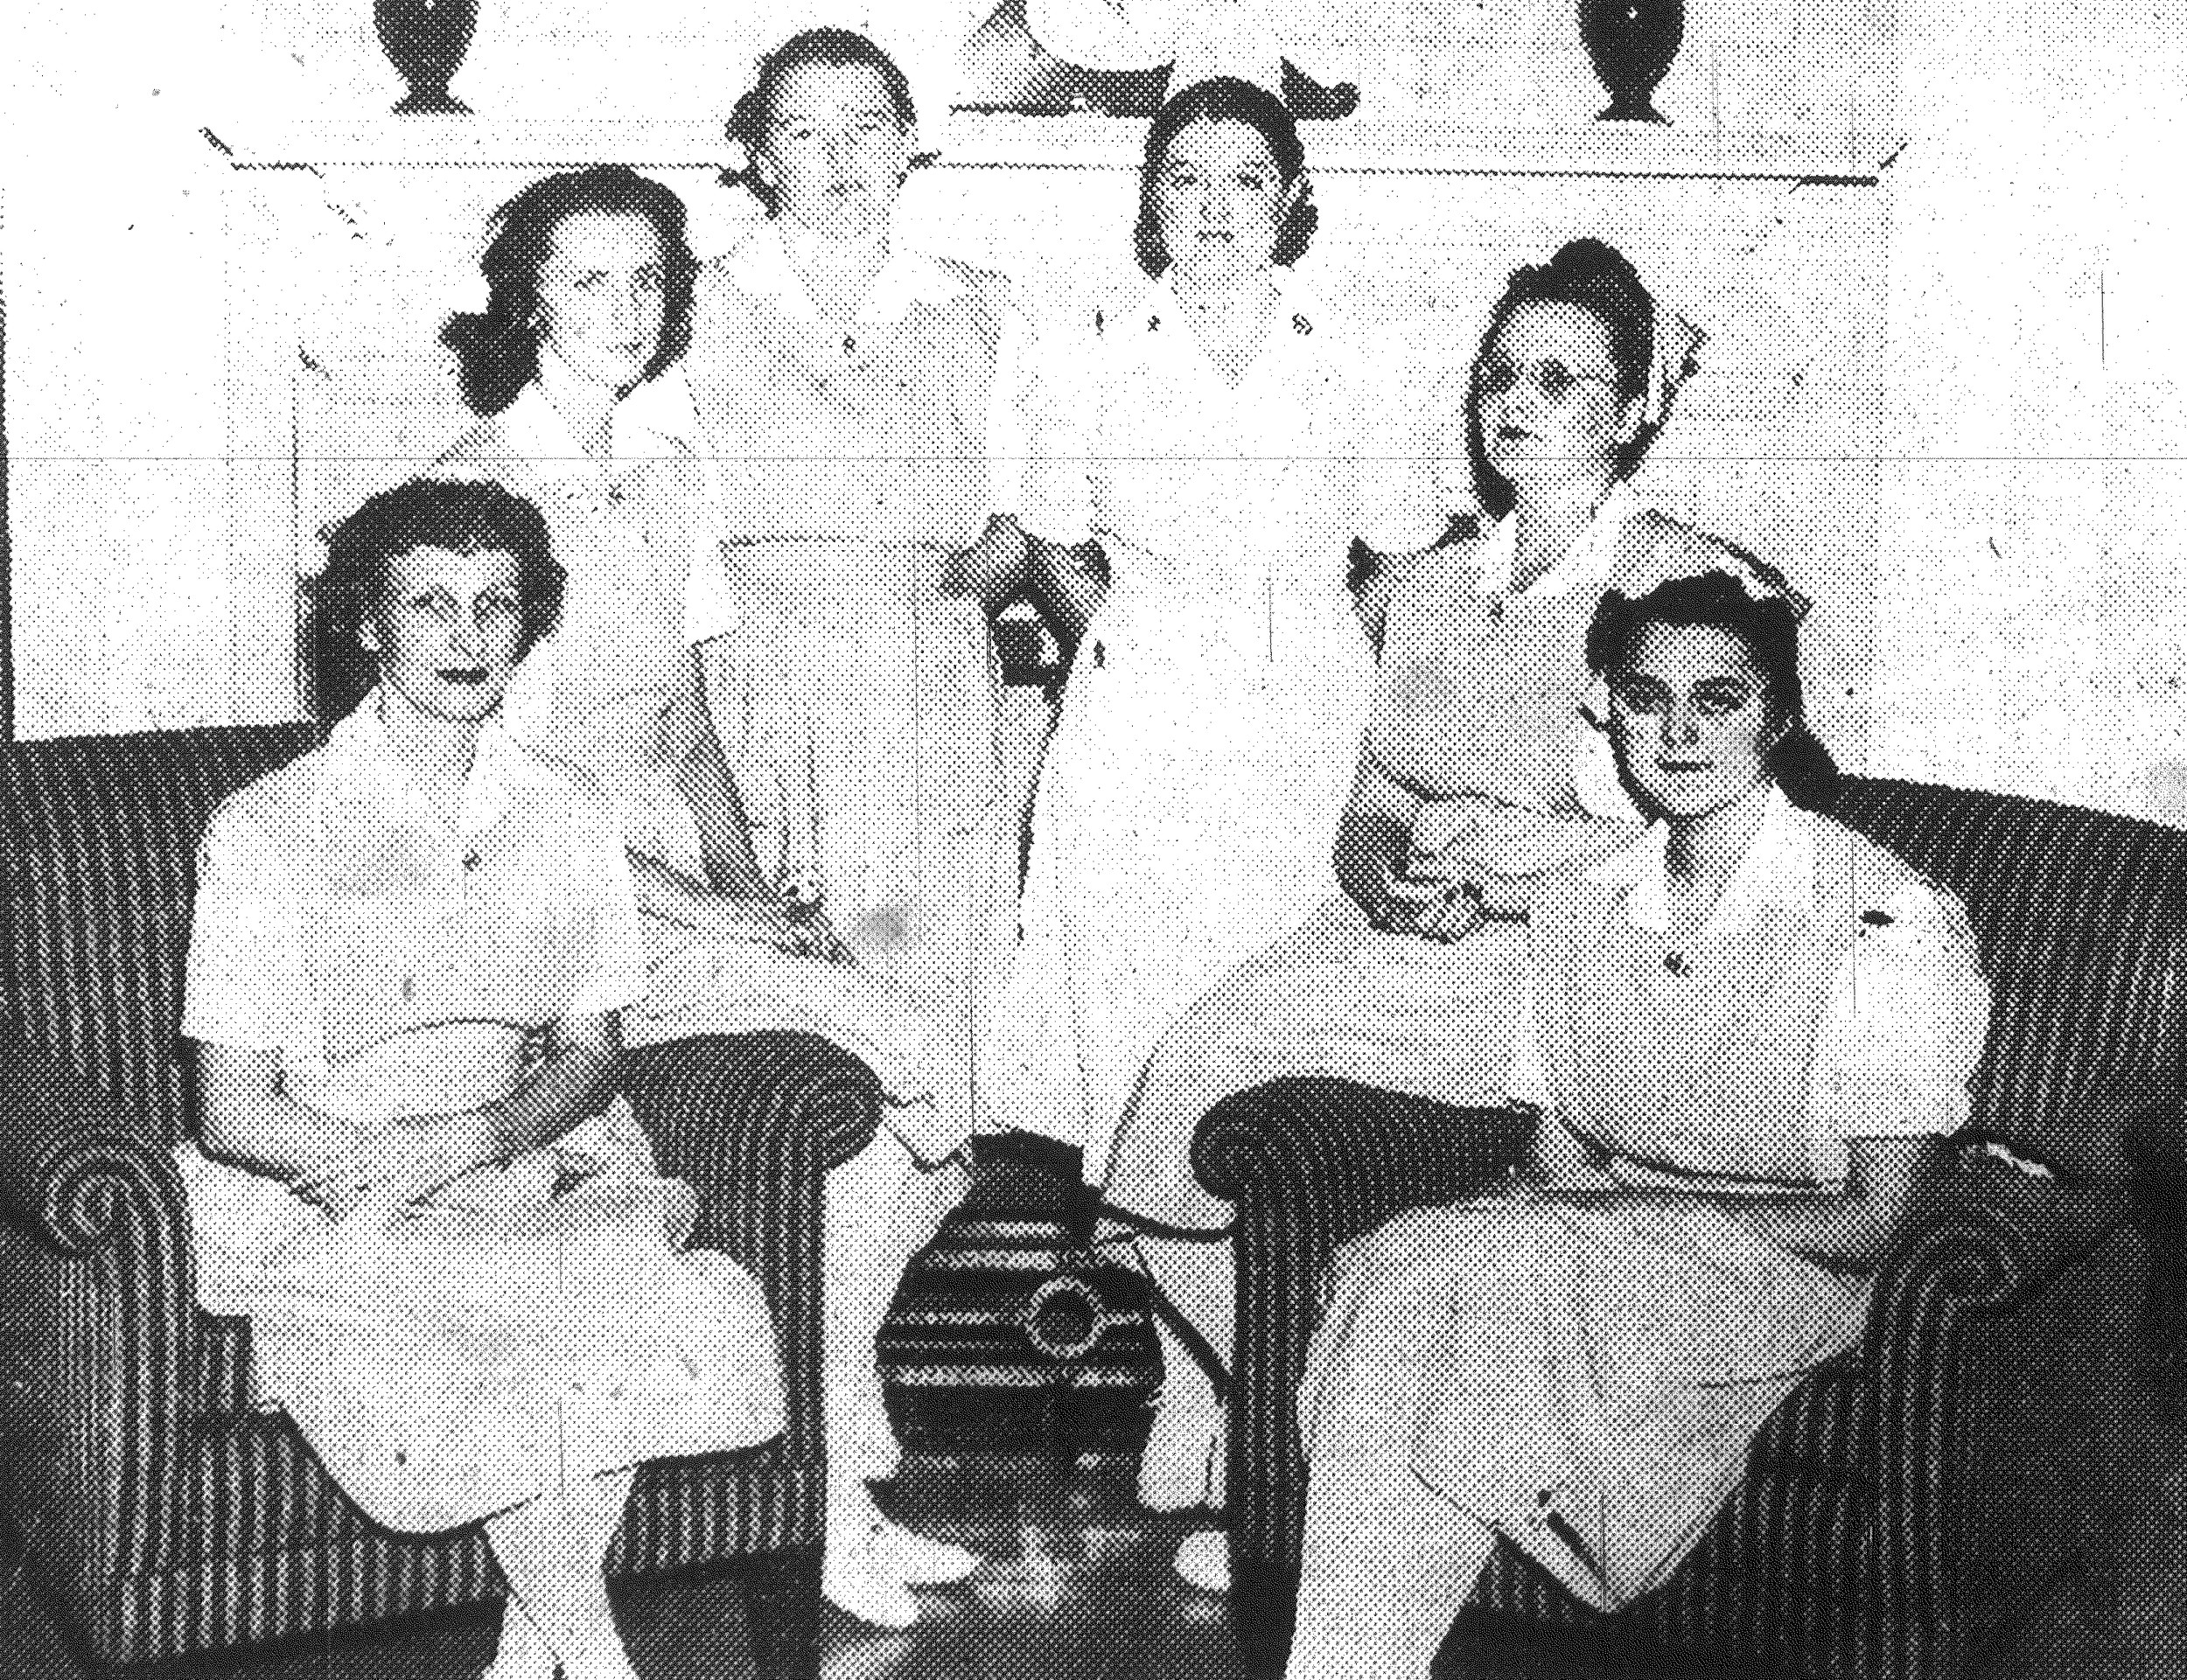 1942 - Sumter's second class of nurse's aides wear their pins and caps received at graduation exercises. From left, they are Mrs. Dudley Hodge, Mrs. Eugene Osteen, Miss Virginia Mabry, Mrs. Gordon, Mrs. W.V. Chadwick and Mrs. Sam Pace.